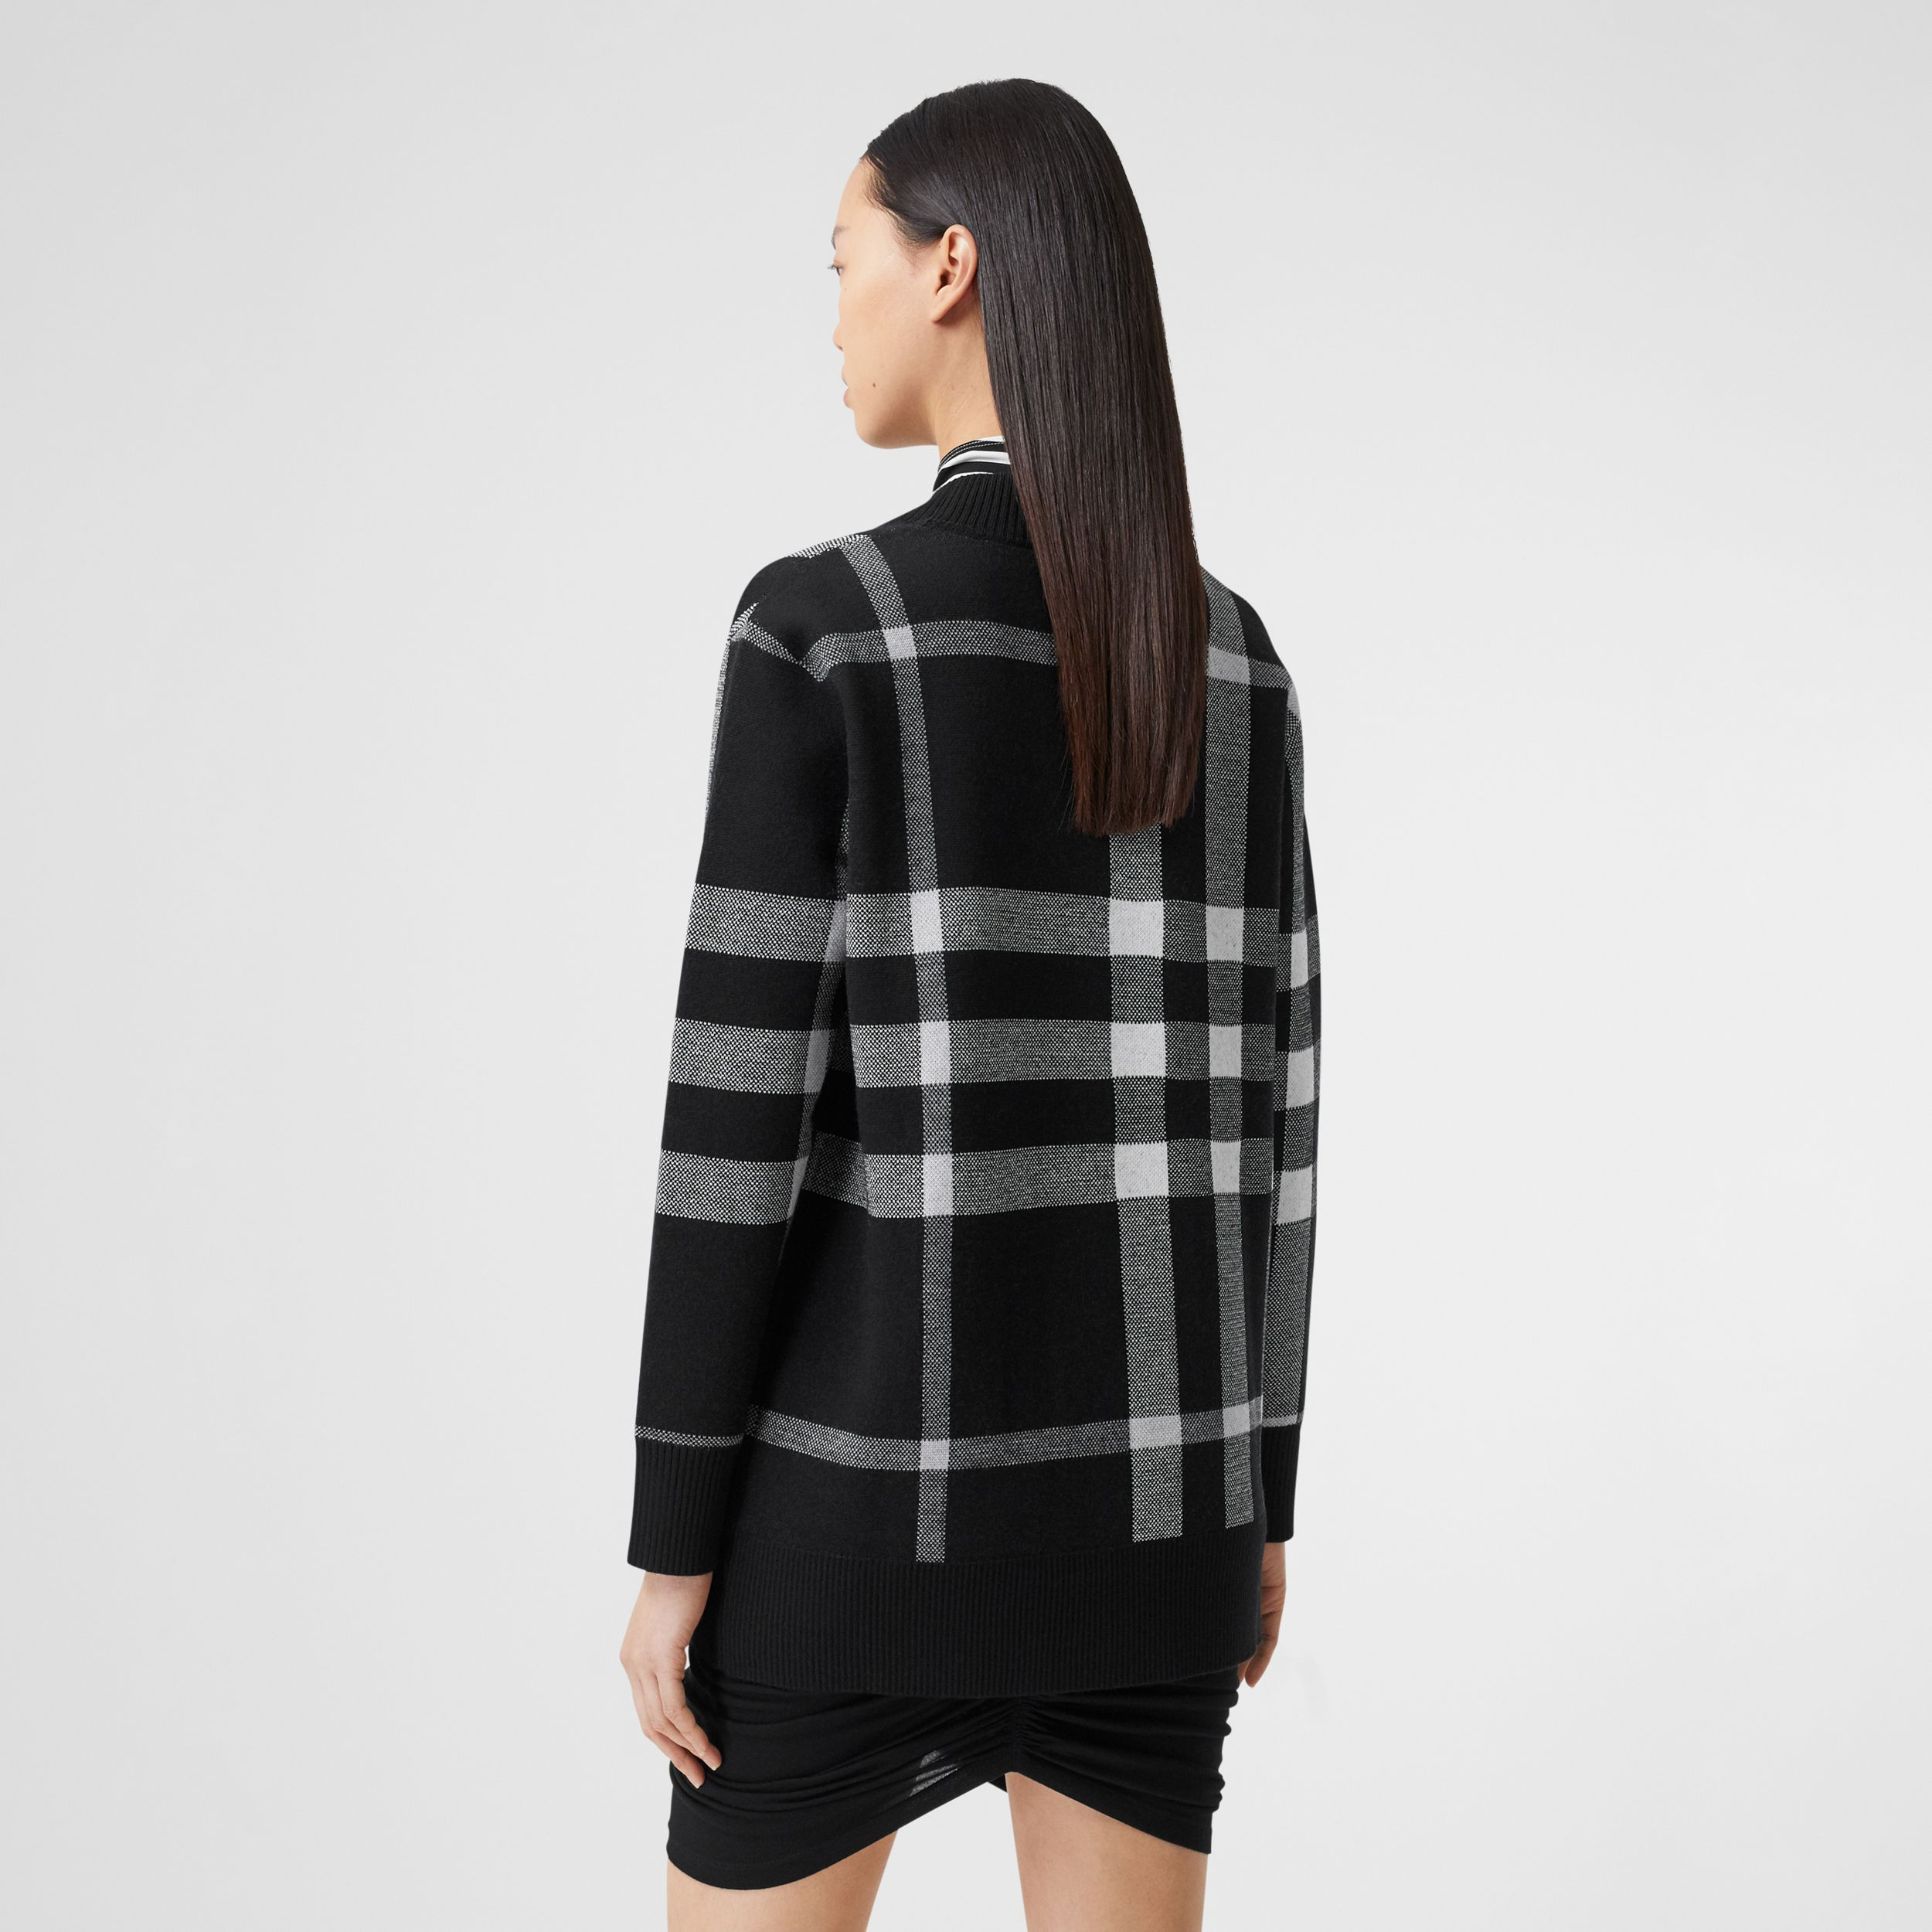 Deer Motif Check Wool Blend Jacquard Cardigan in Black - Women | Burberry - 4